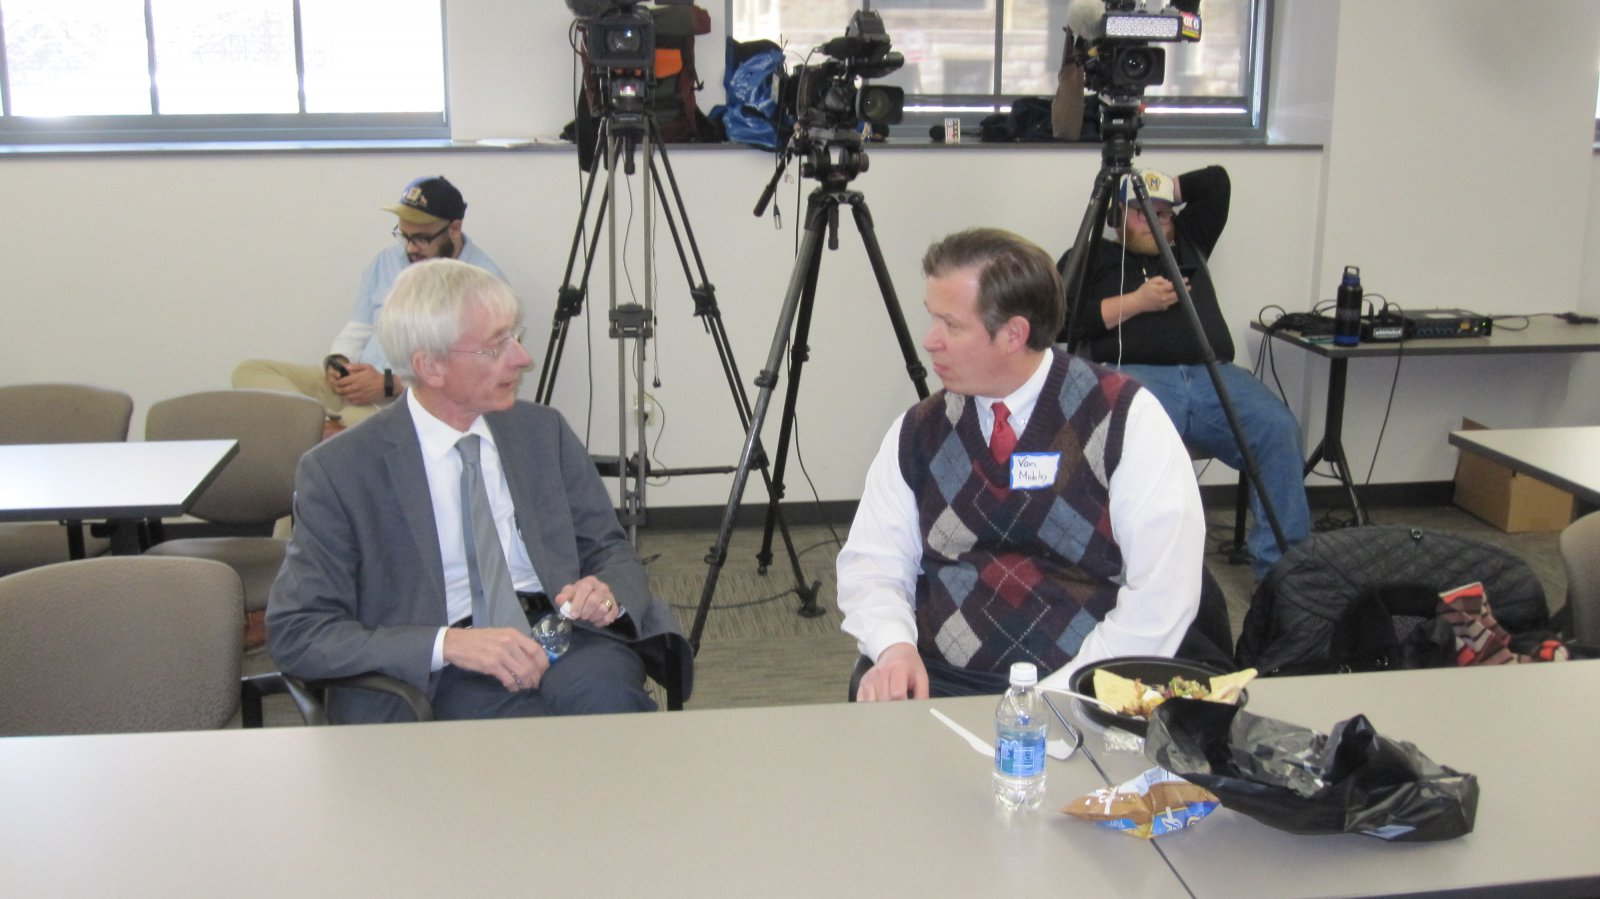 Tony Evers and Van Mobley